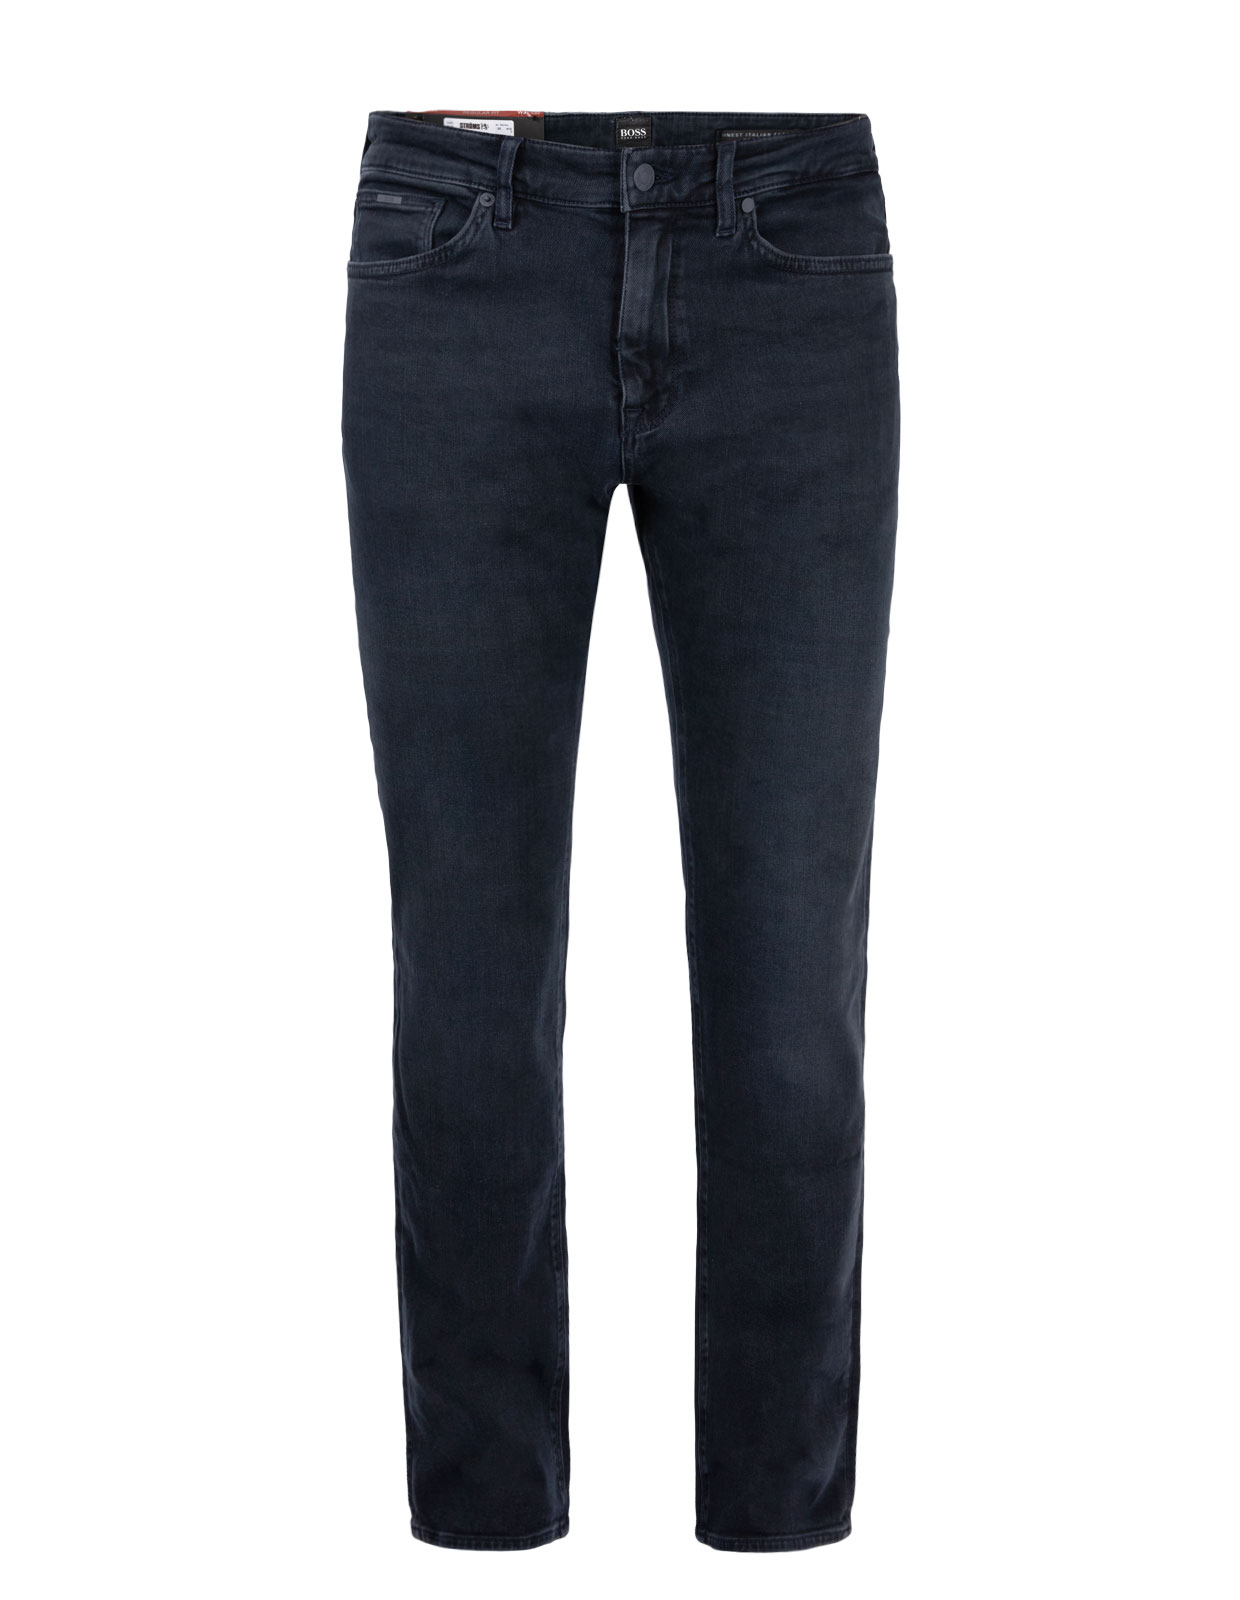 Maine Regular Fit Jeans Super Soft Denim Dark Blue